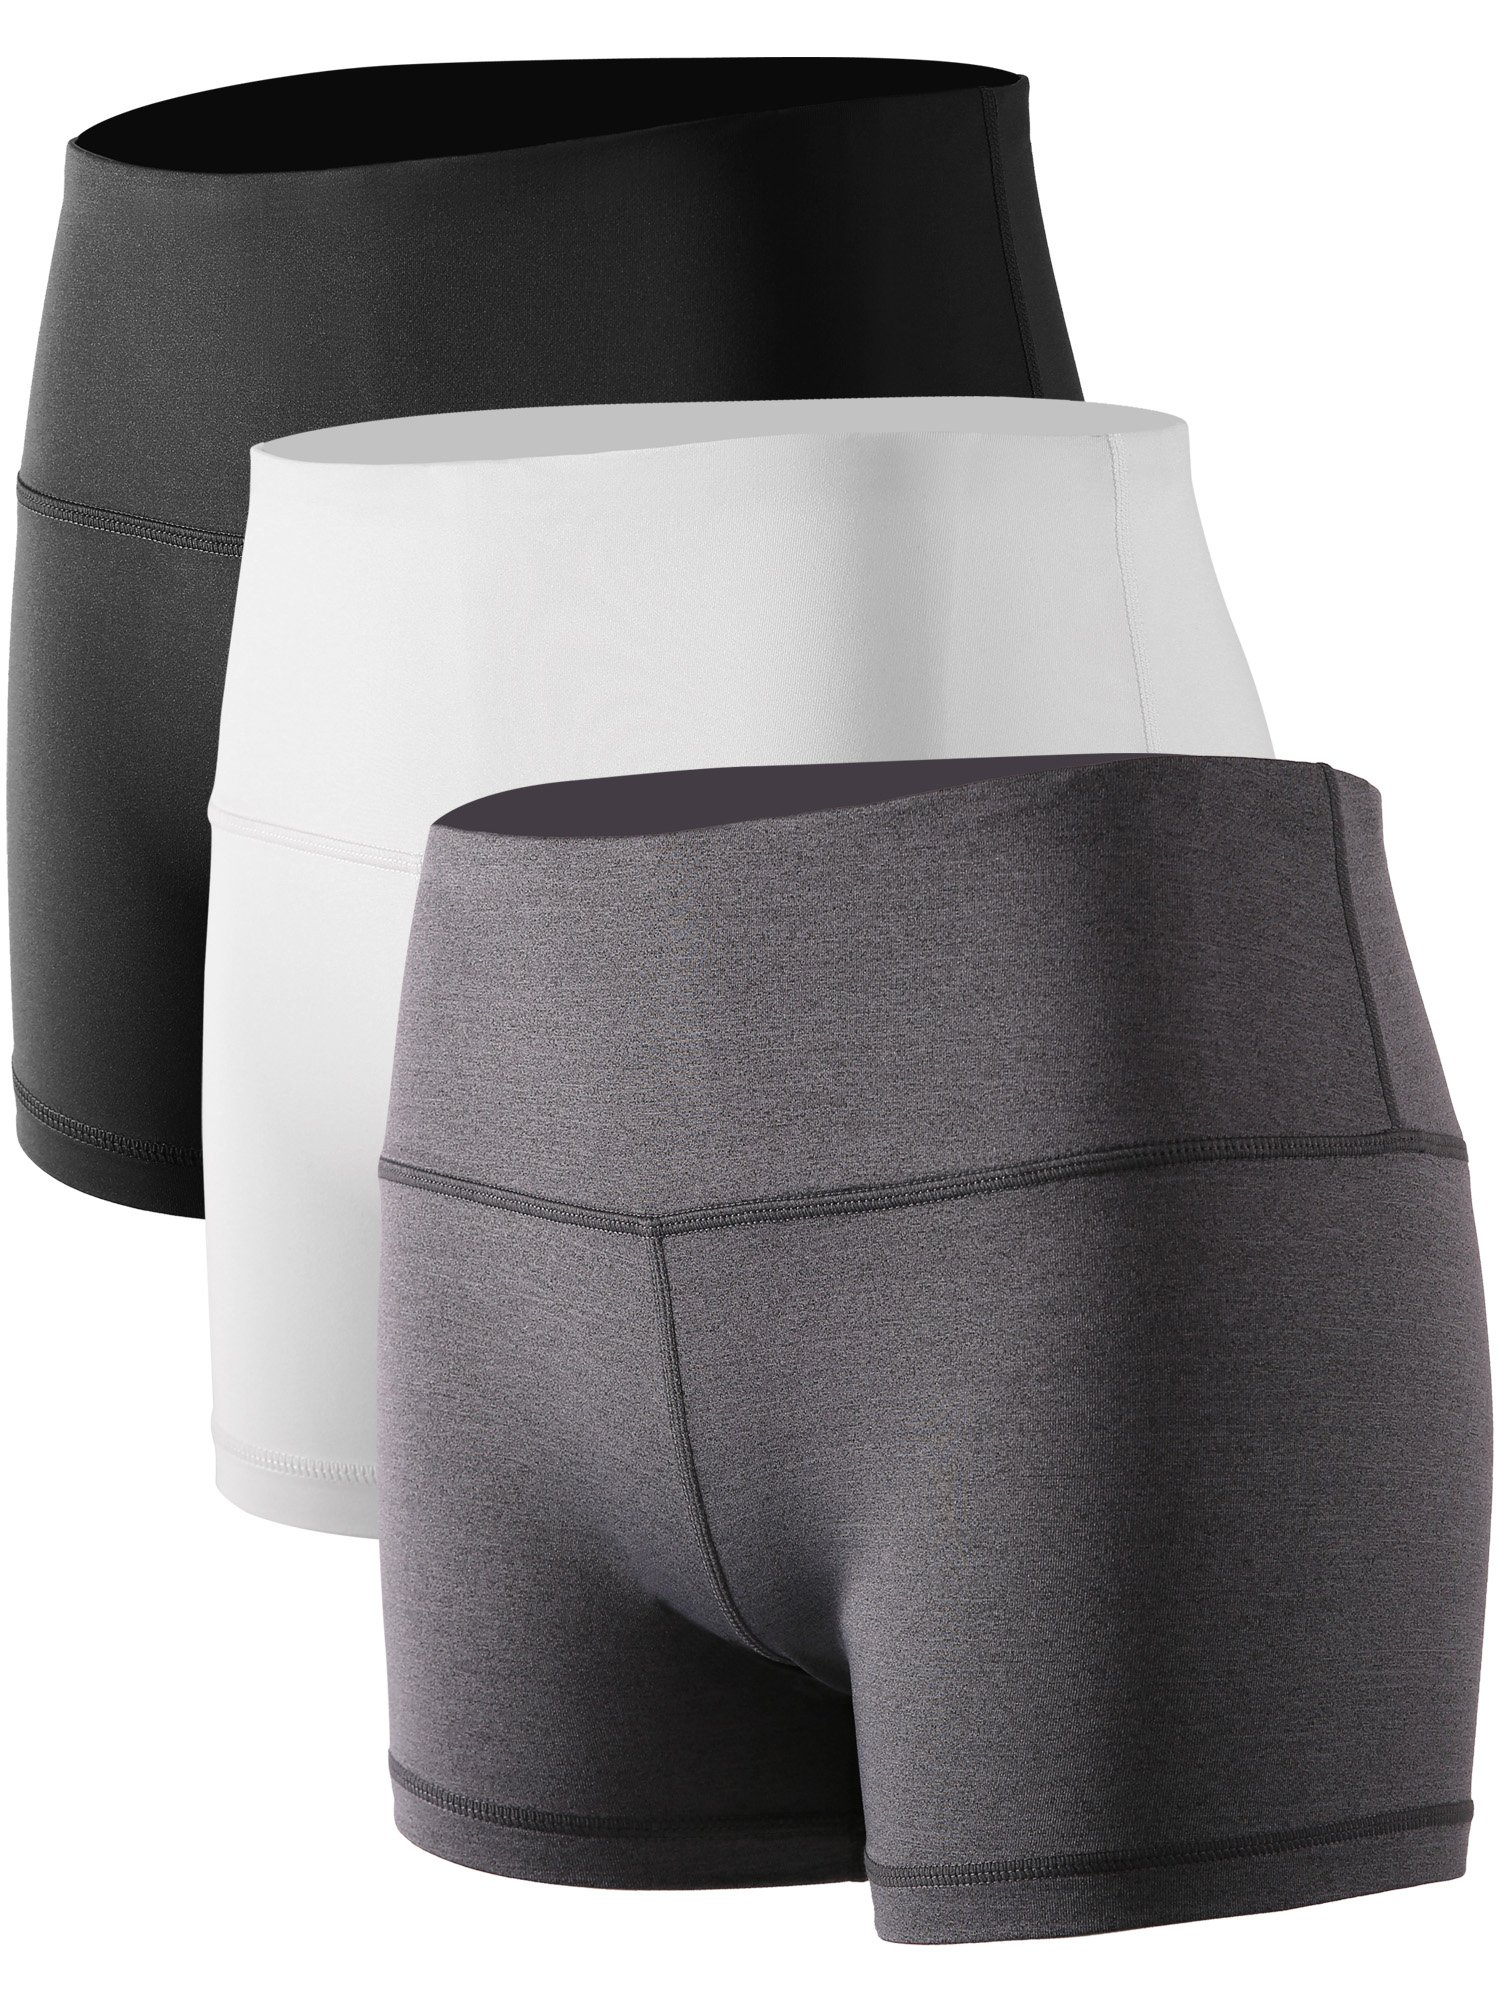 Cadmus Women's Stretch Fitness Running Shorts with Pocket,3 Pack,05,Black,Grey,White,Large by Cadmus